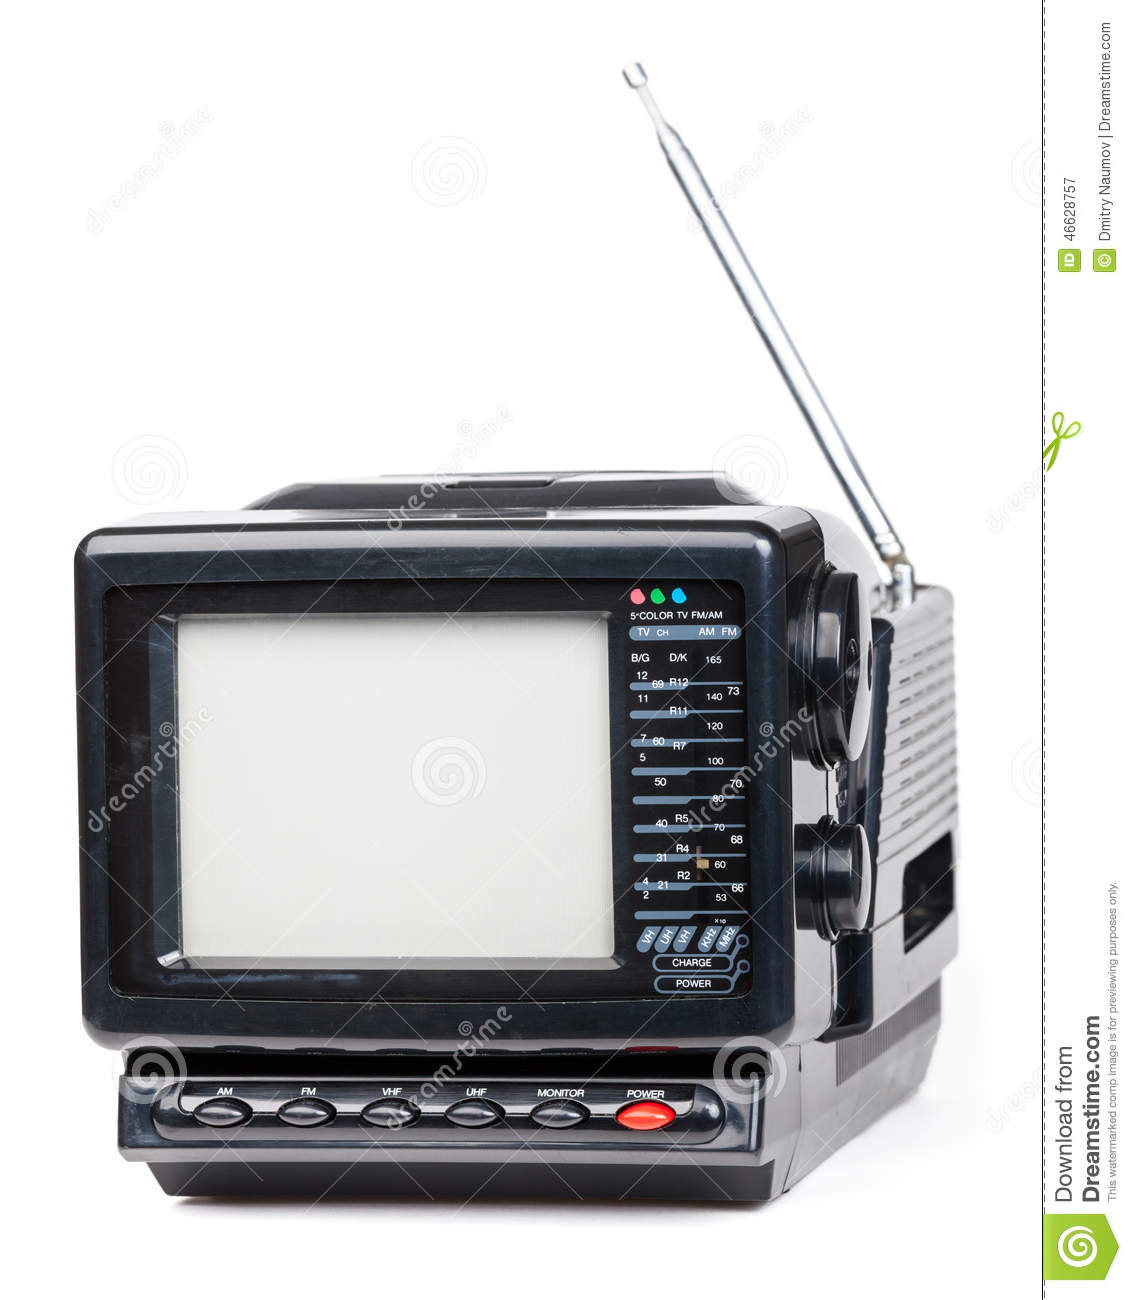 old handheld radio and television set isolated stock photo image 46628757. Black Bedroom Furniture Sets. Home Design Ideas